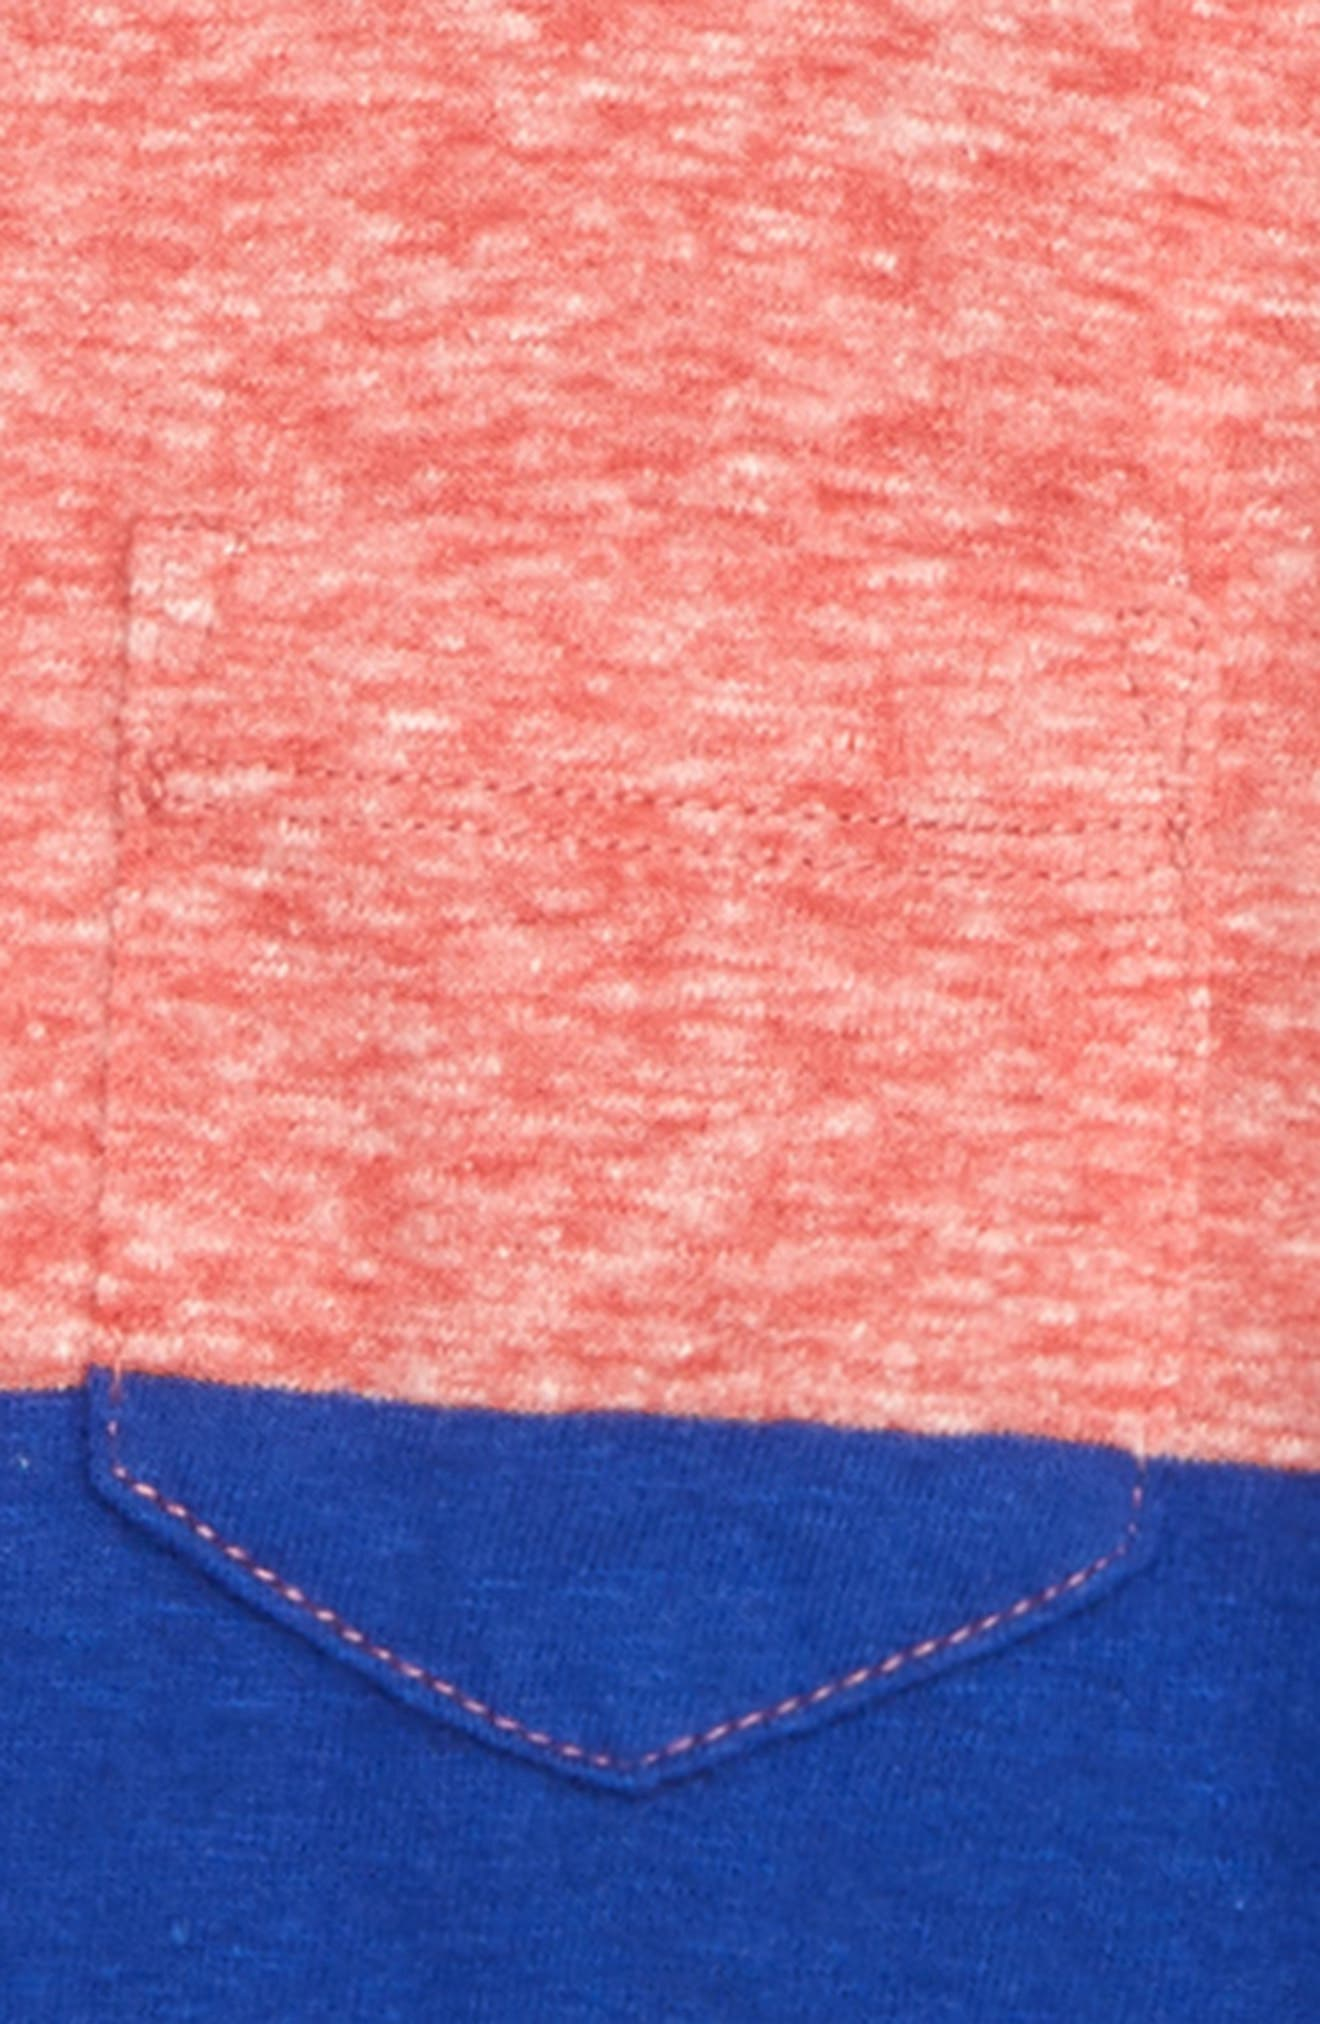 Rugby Stripe Shirt,                             Alternate thumbnail 2, color,                             600